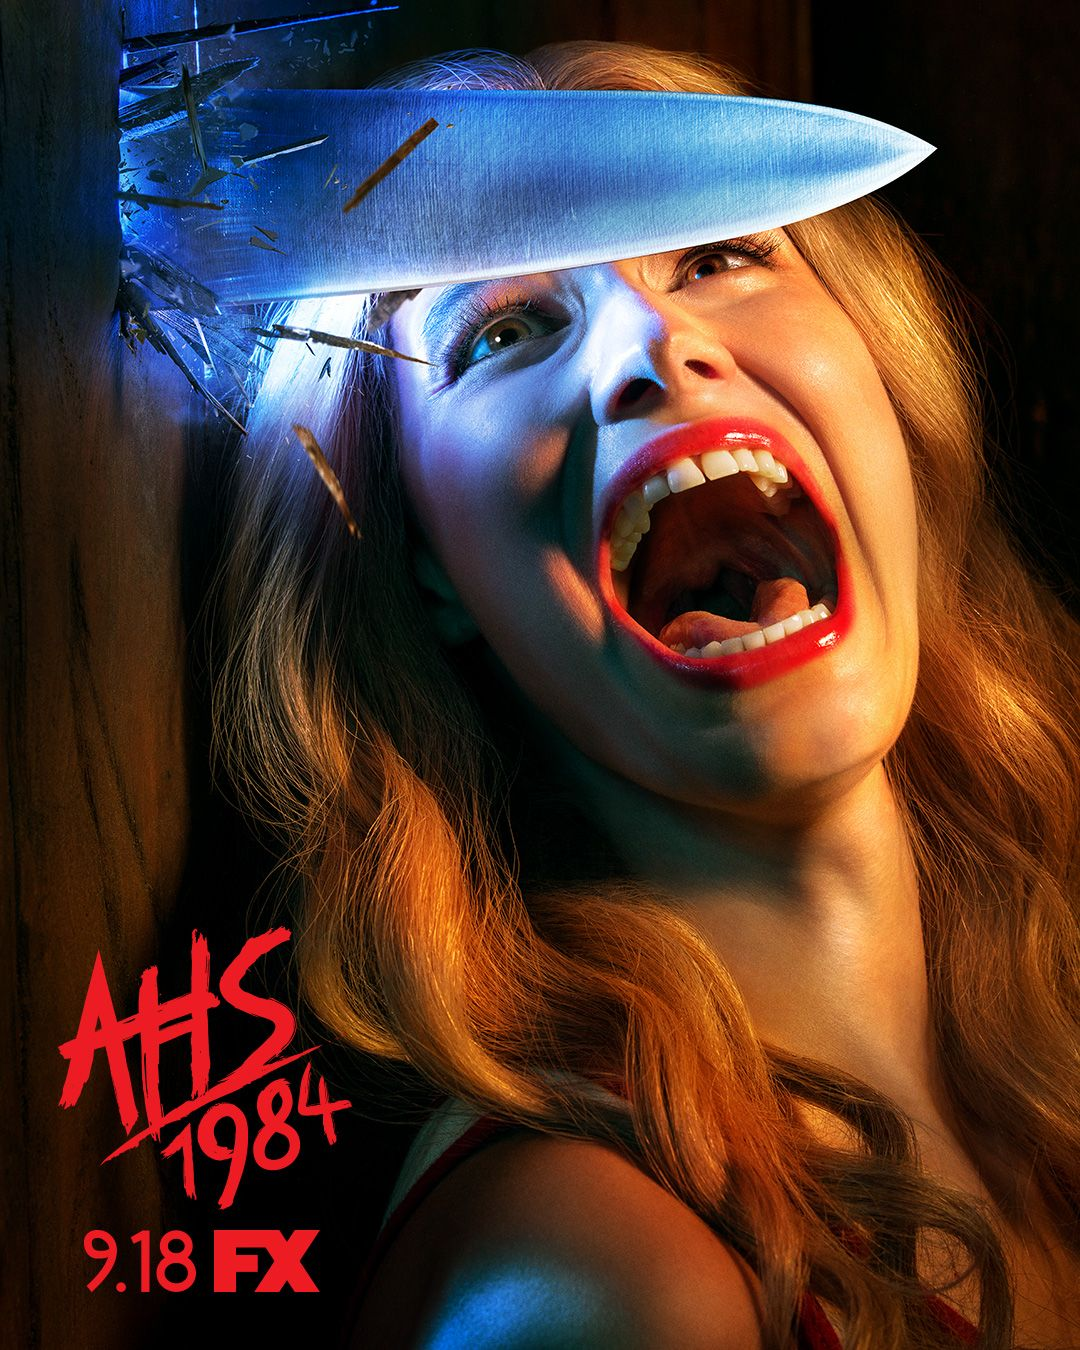 9 American Horror Story 1984 Scary Movie References